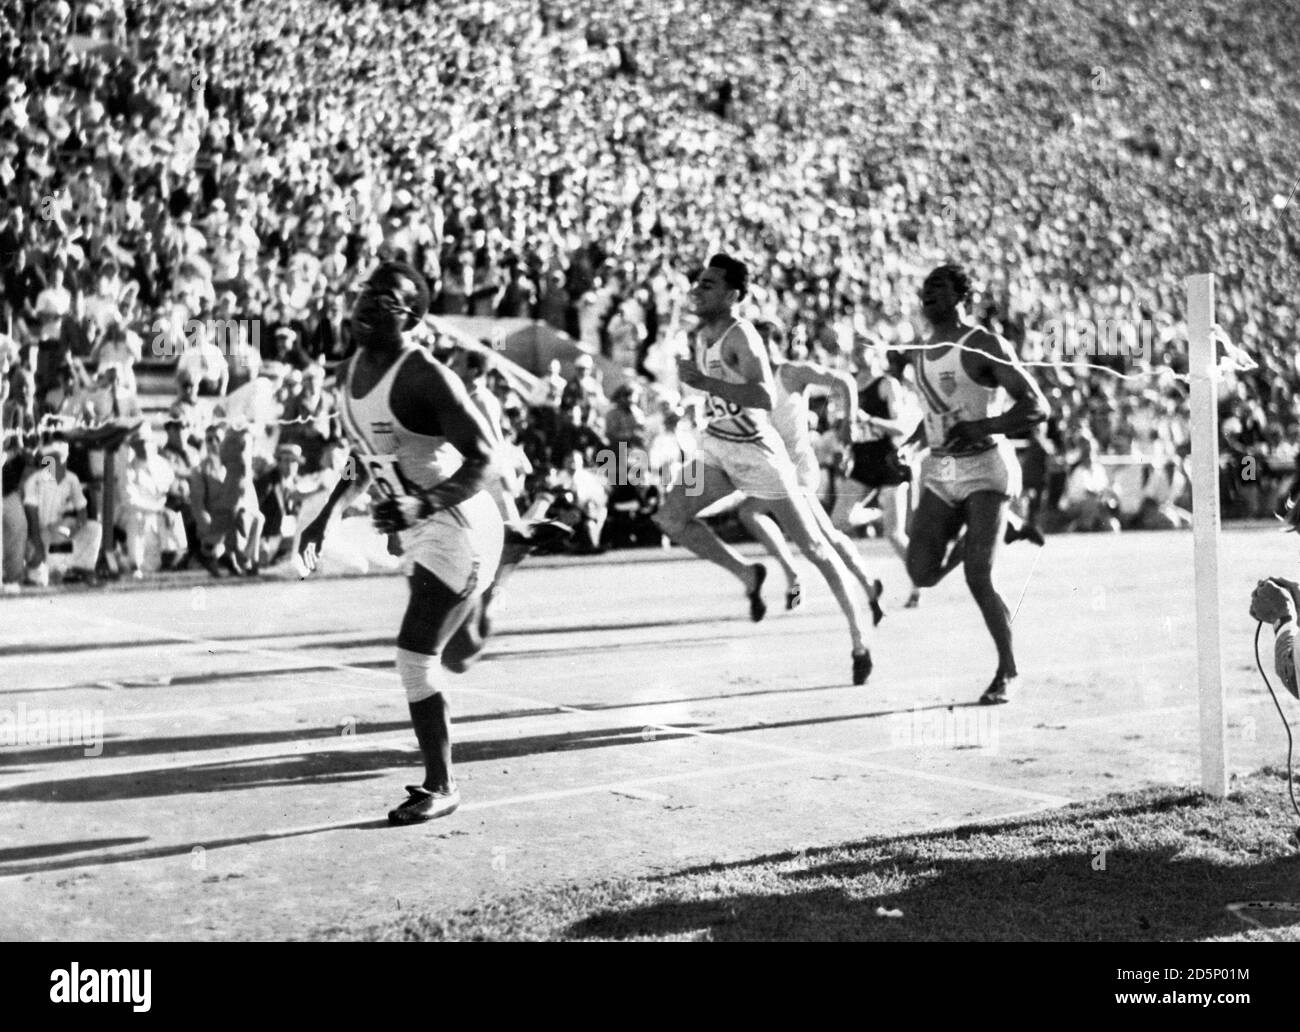 Olympic Runners Black And White High Resolution Stock Photography and  Images - Alamy